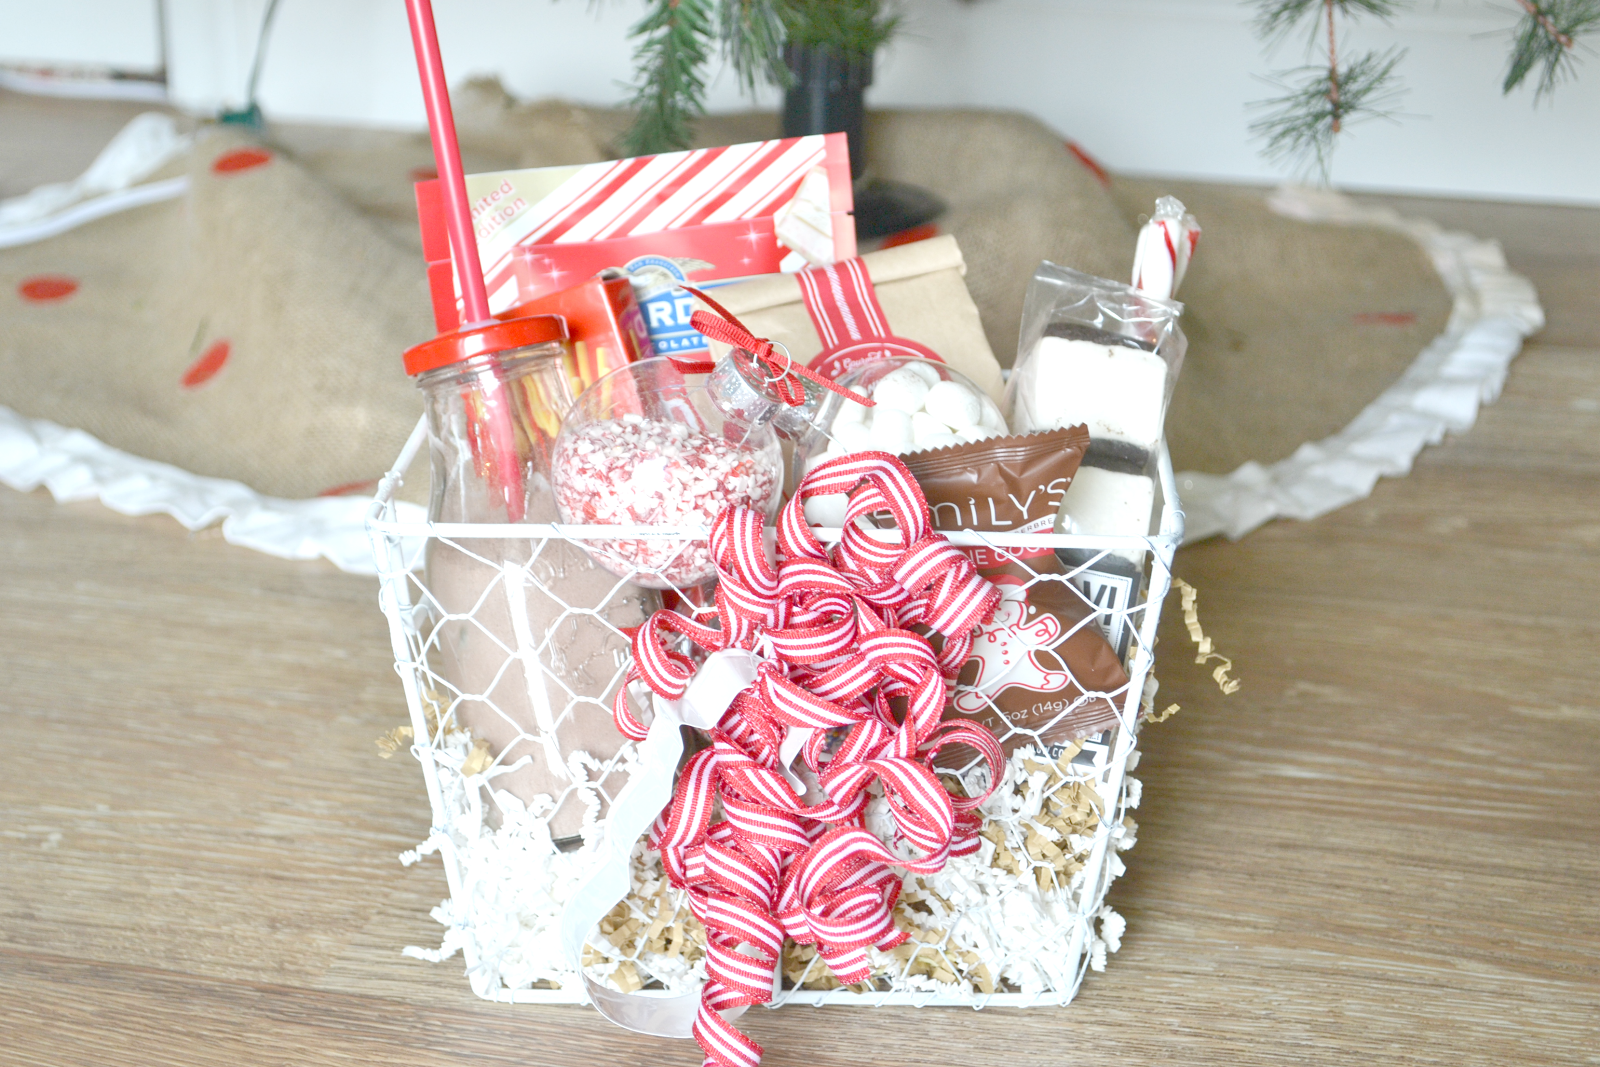 Man Cave Gifts Target : All things pink and pretty: december 2015